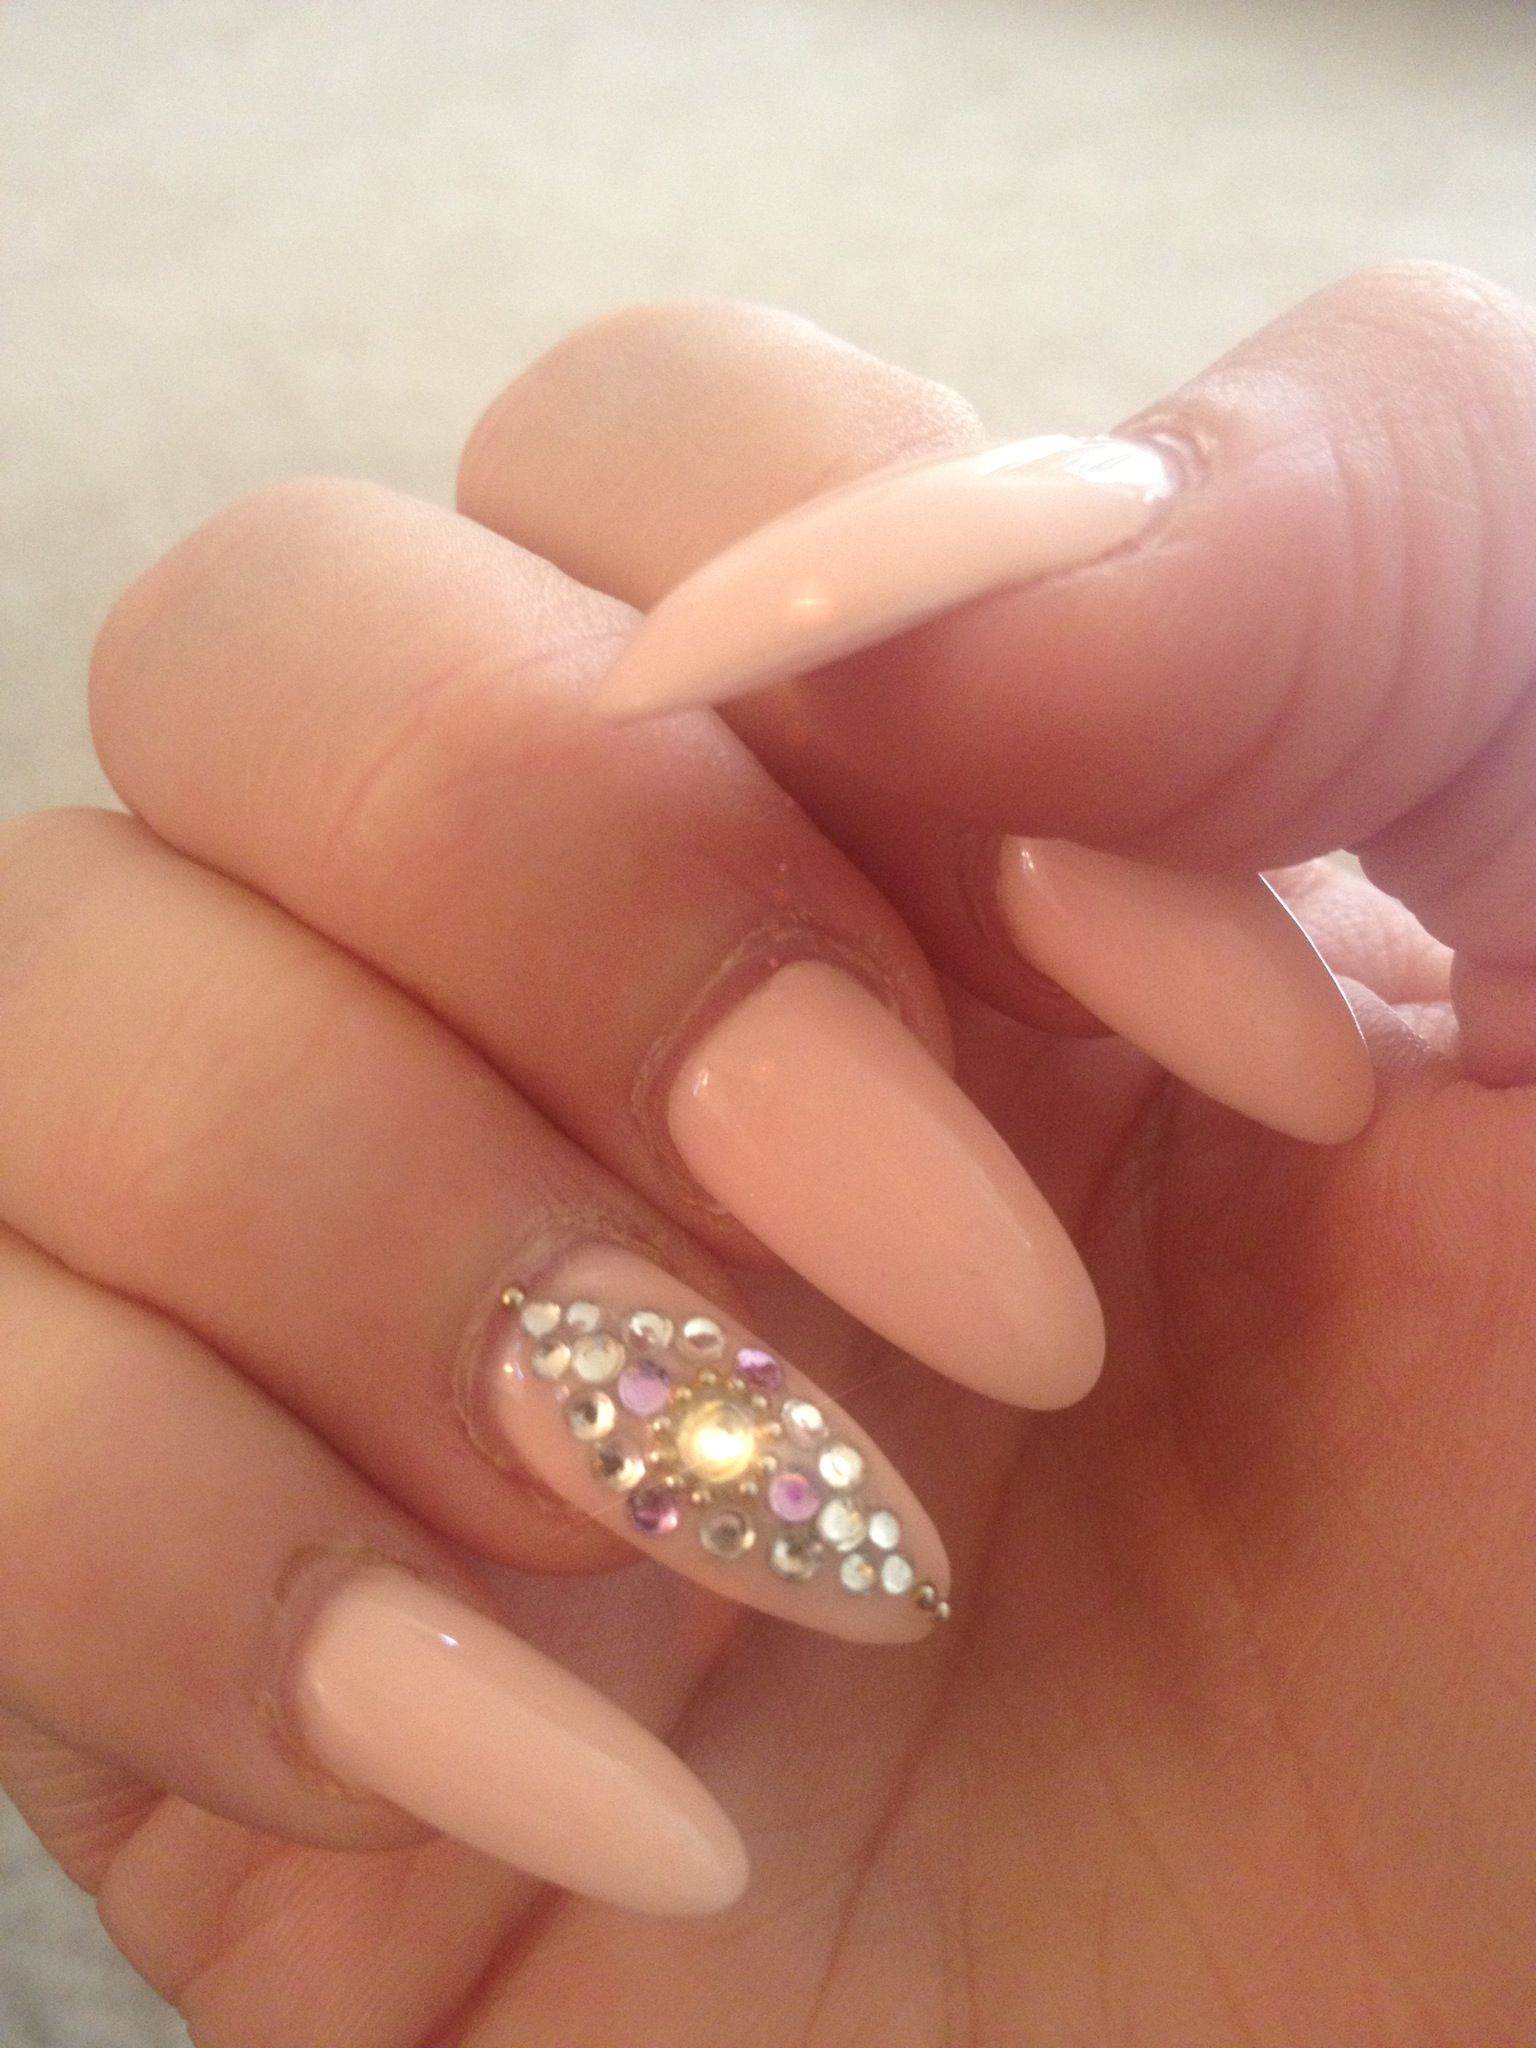 gorgeous pink nails with a diamond crystal embellished nail design